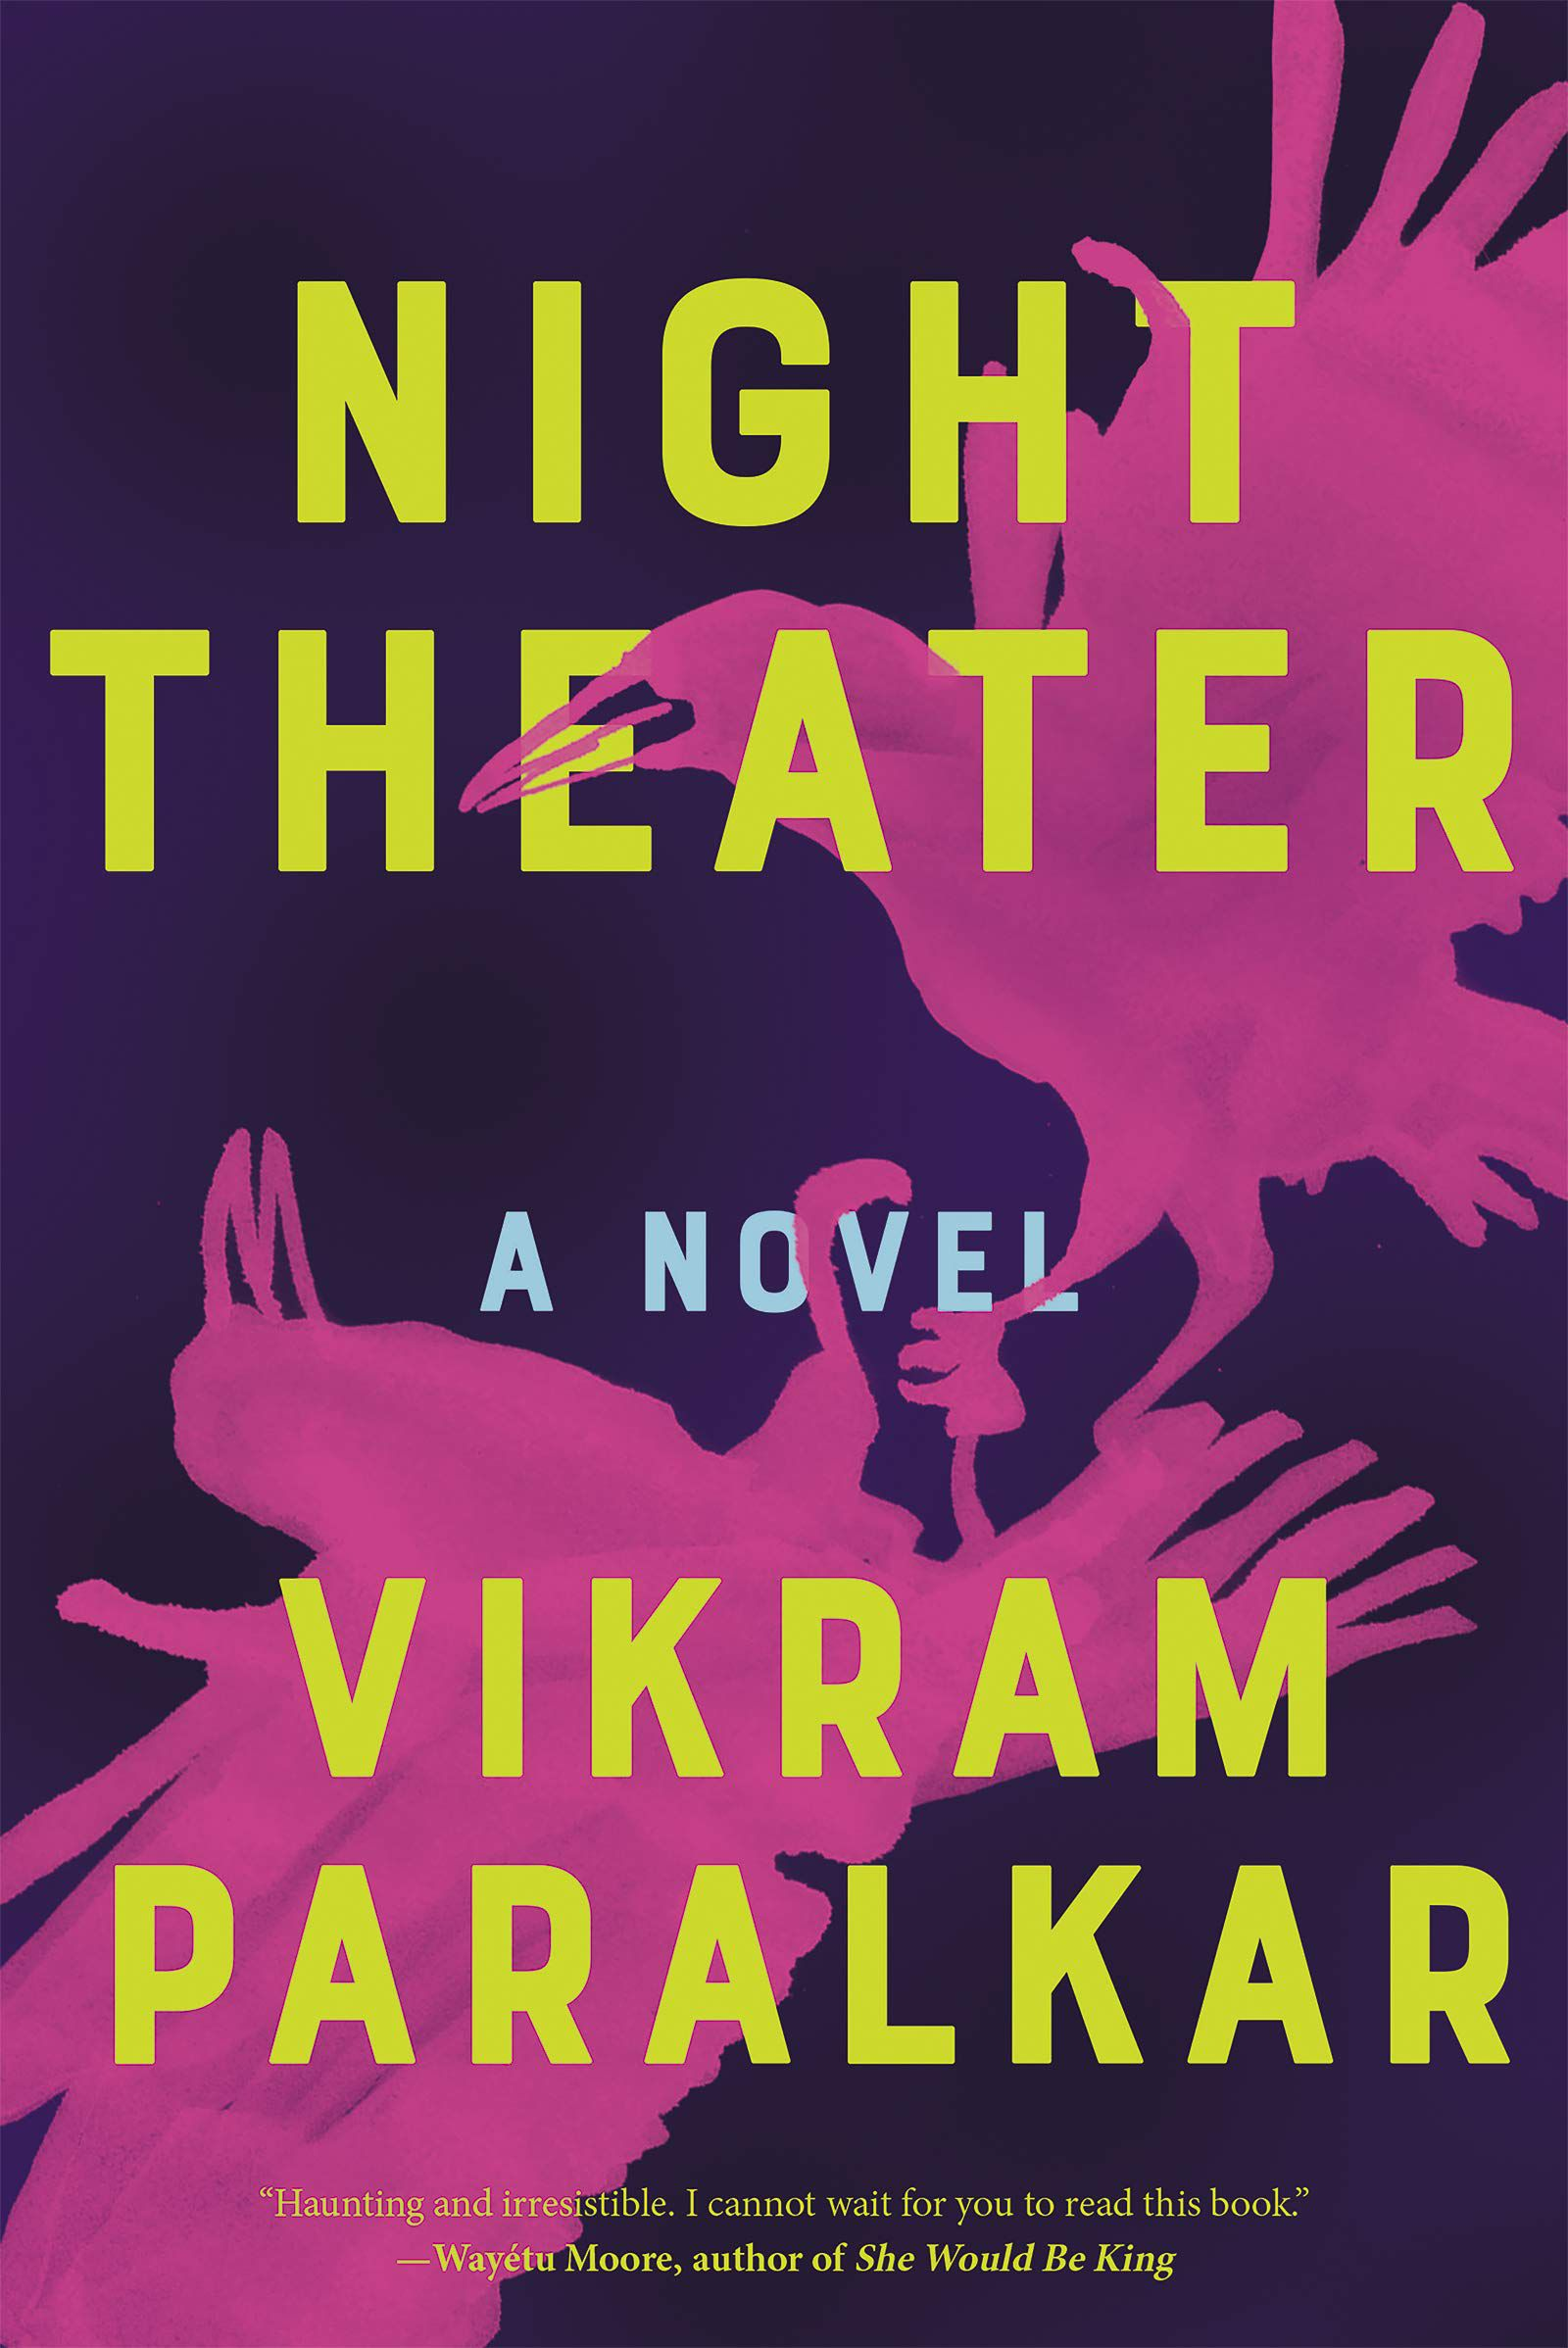 night theatre cover.jpg.optimal